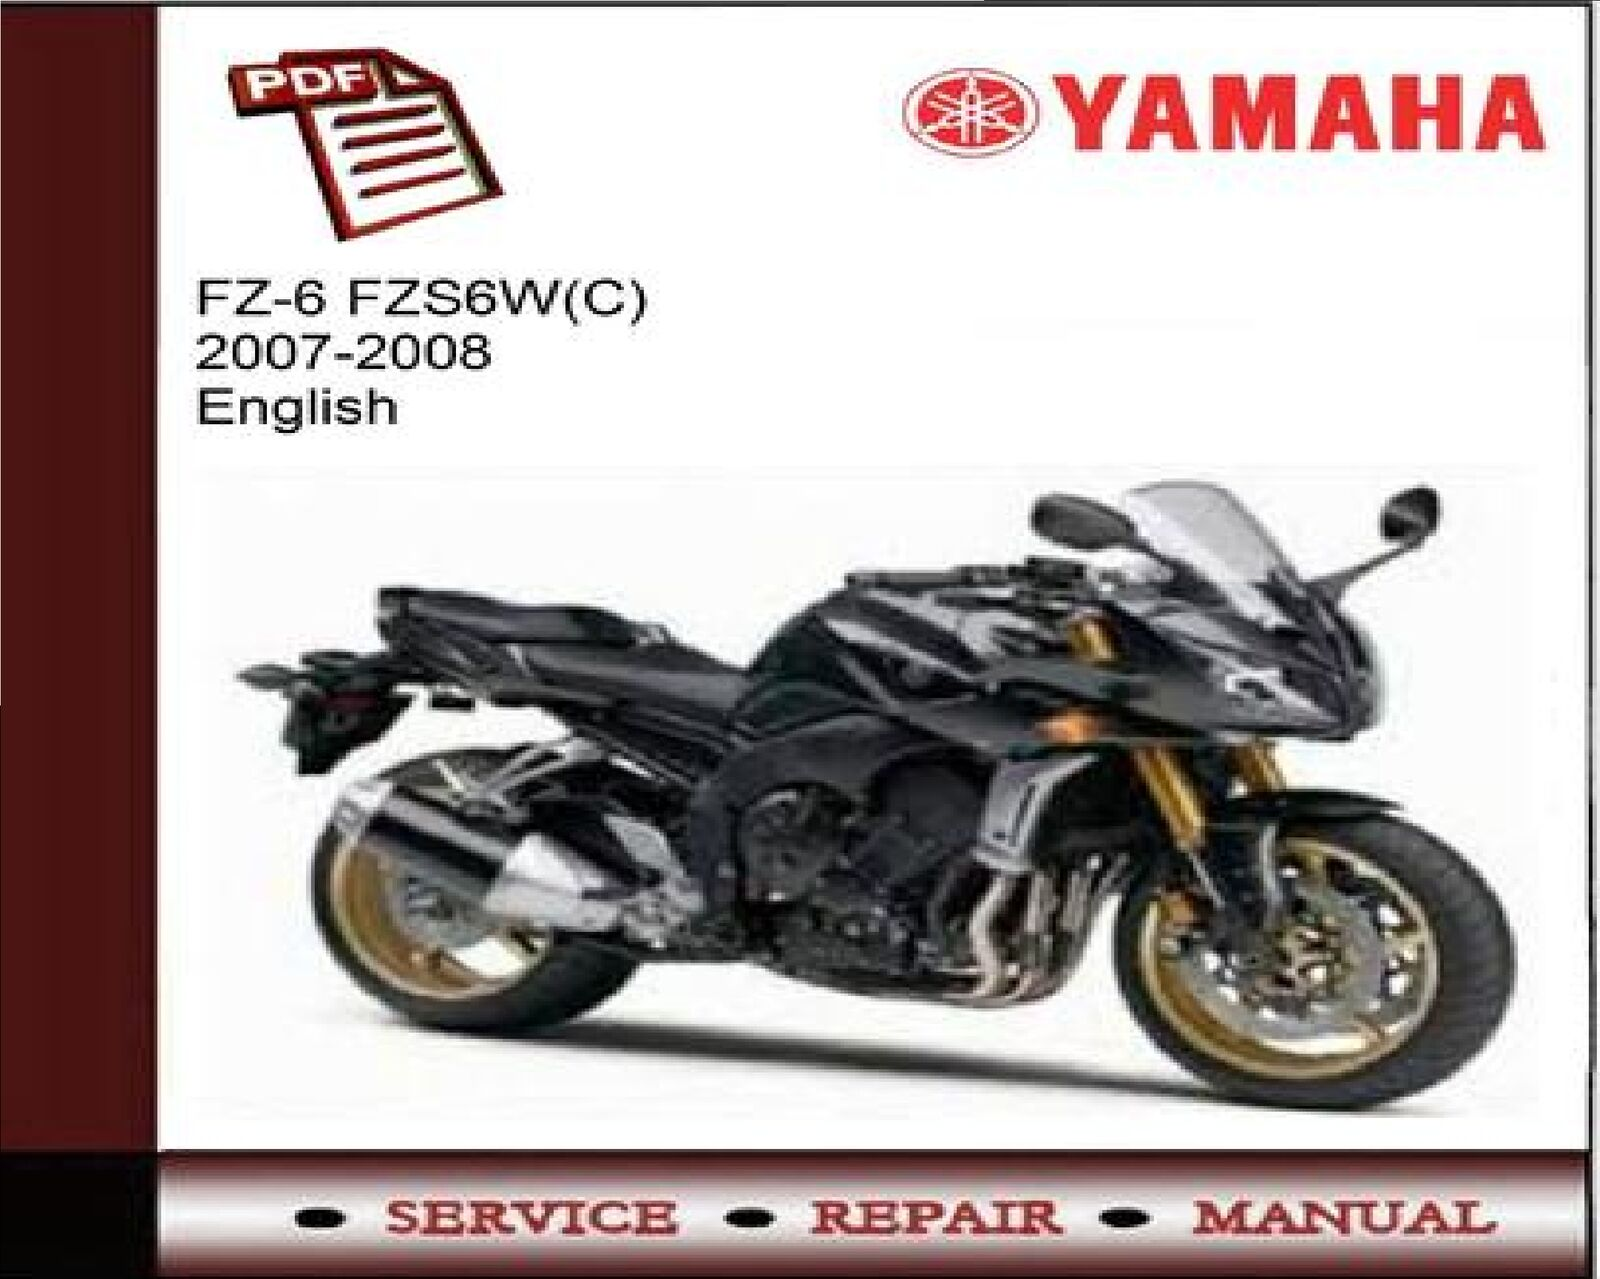 Yamaha FZ6 FZS6W(C) 2007 - 2008 Service Repair Workshop Manual 1 of 1FREE  Shipping ...